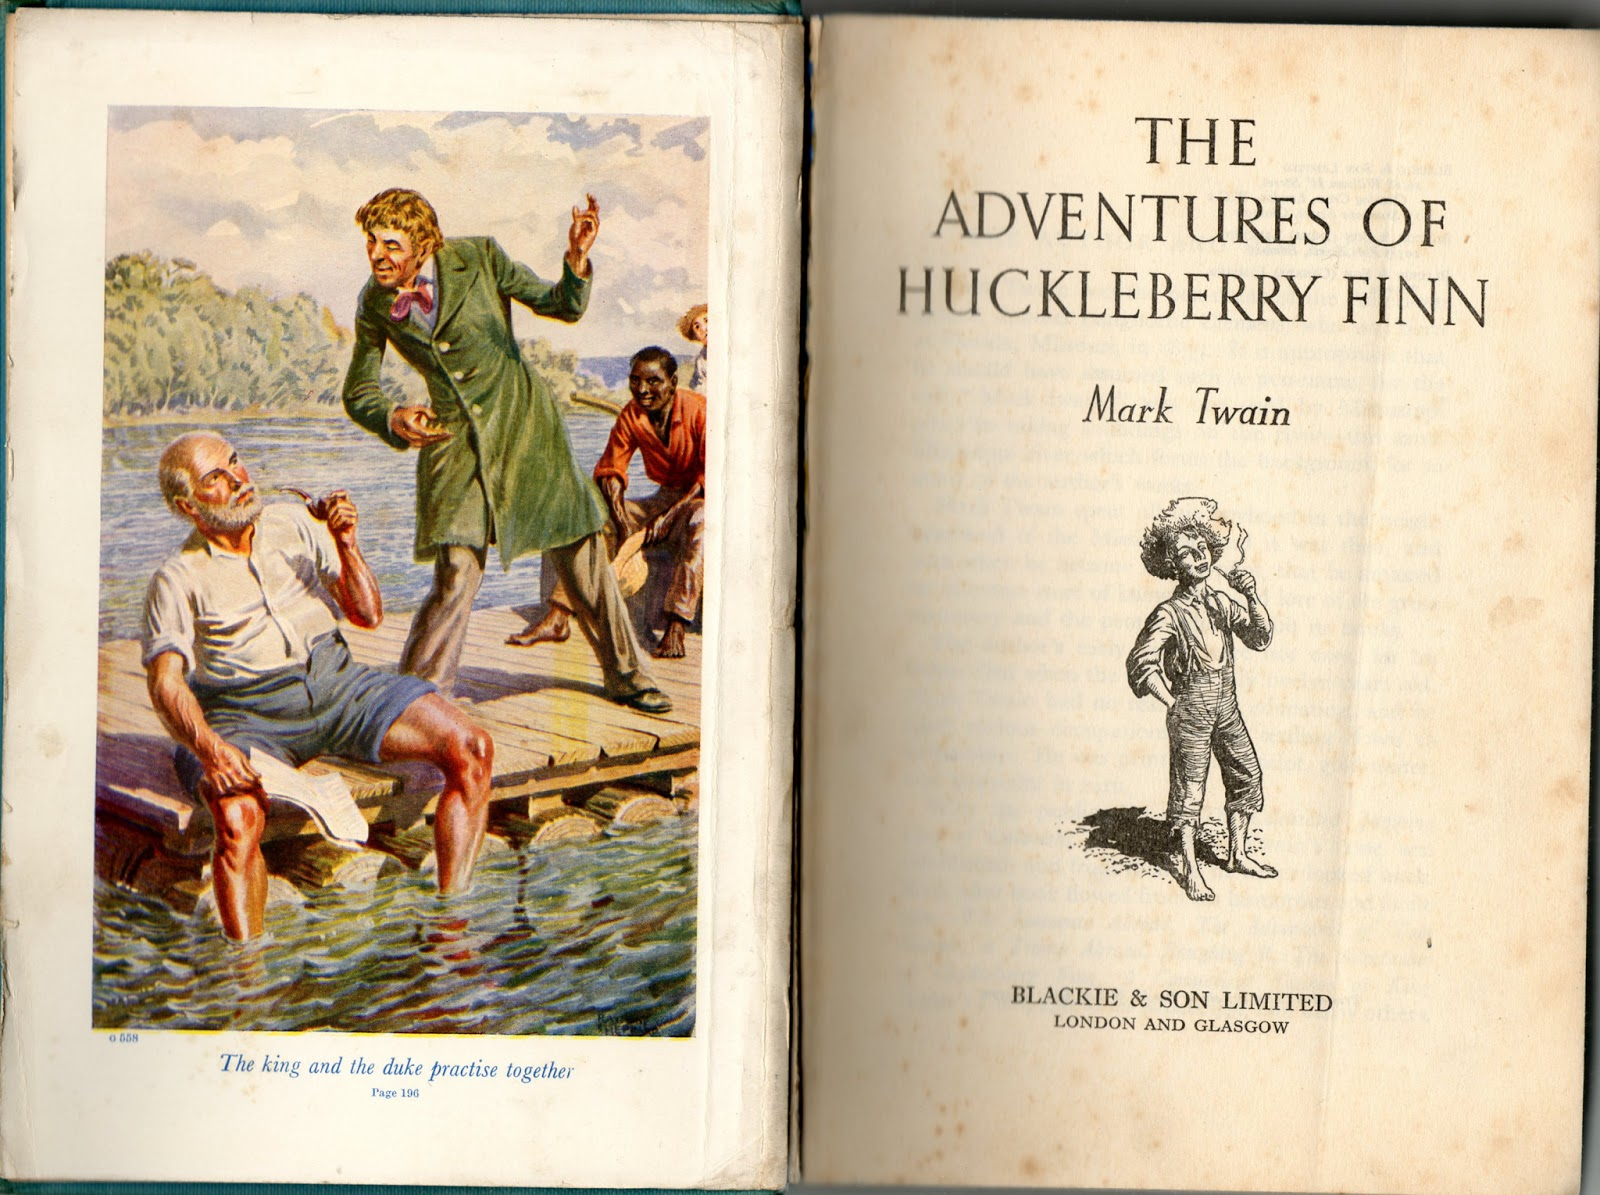 supernatural in adventures of huckleberry finn Born on 30 november 1835, clemens (better known by his pen name mark  twain) is most renowned for his novels the adventures of huckleberry finn and  the.